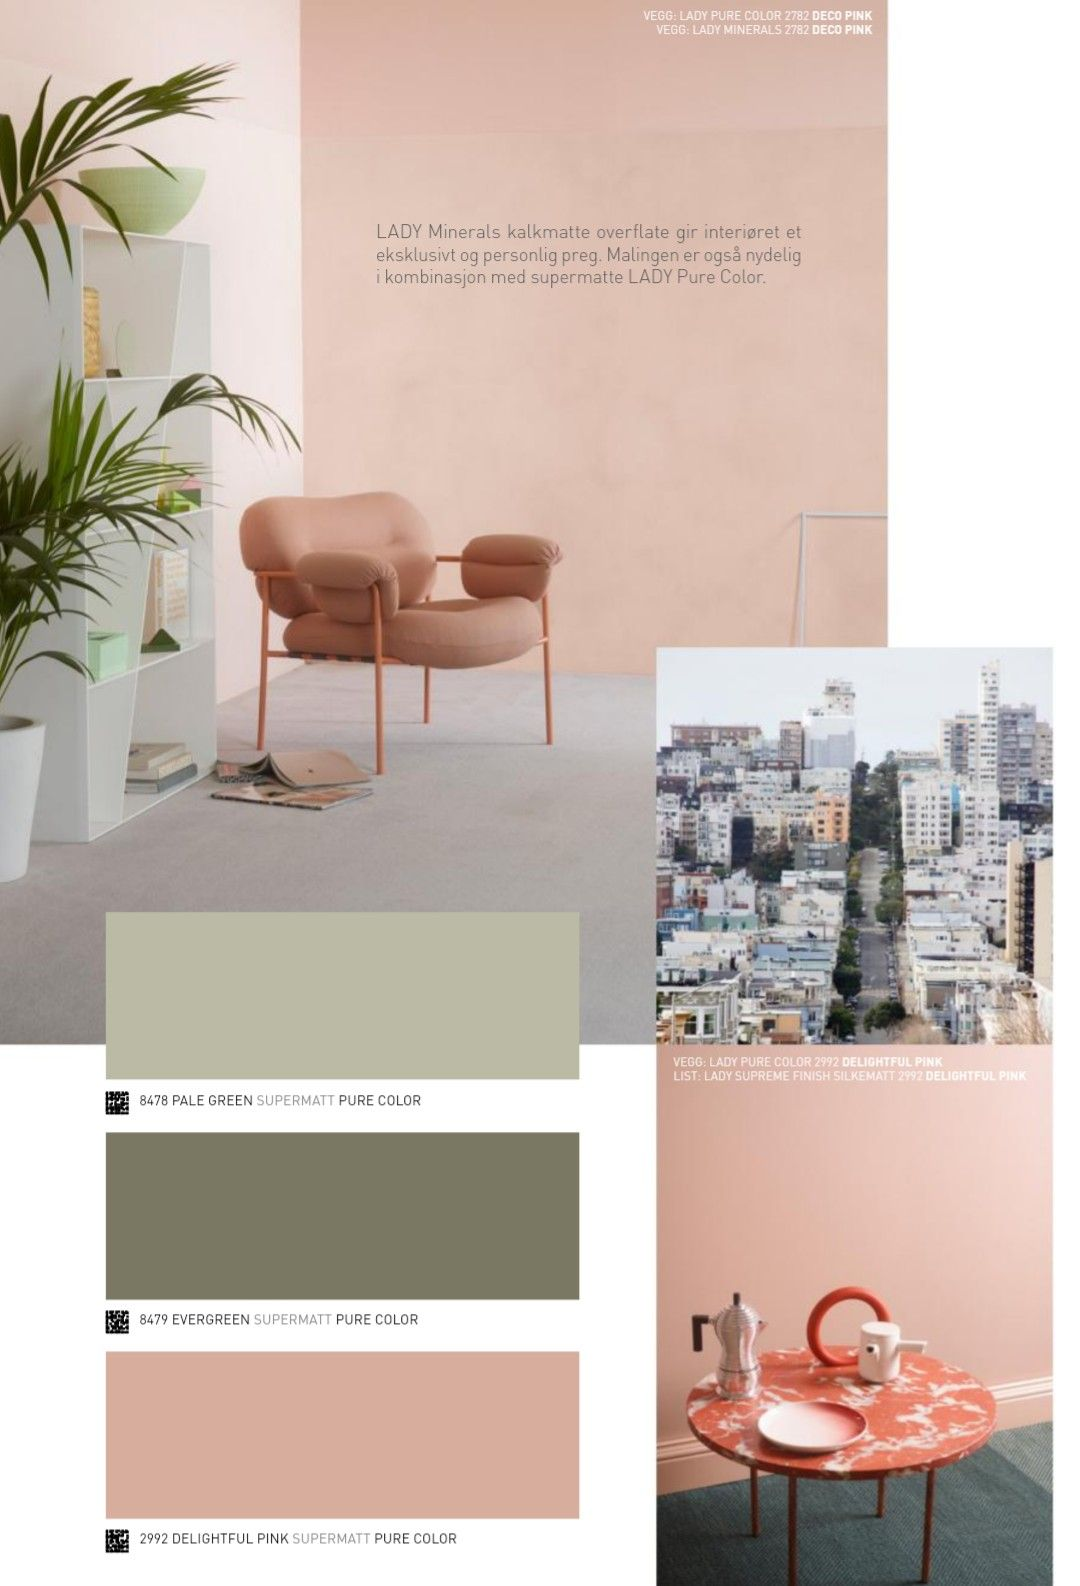 jotun pale green evergreen deco pink home color palette home rh pinterest com